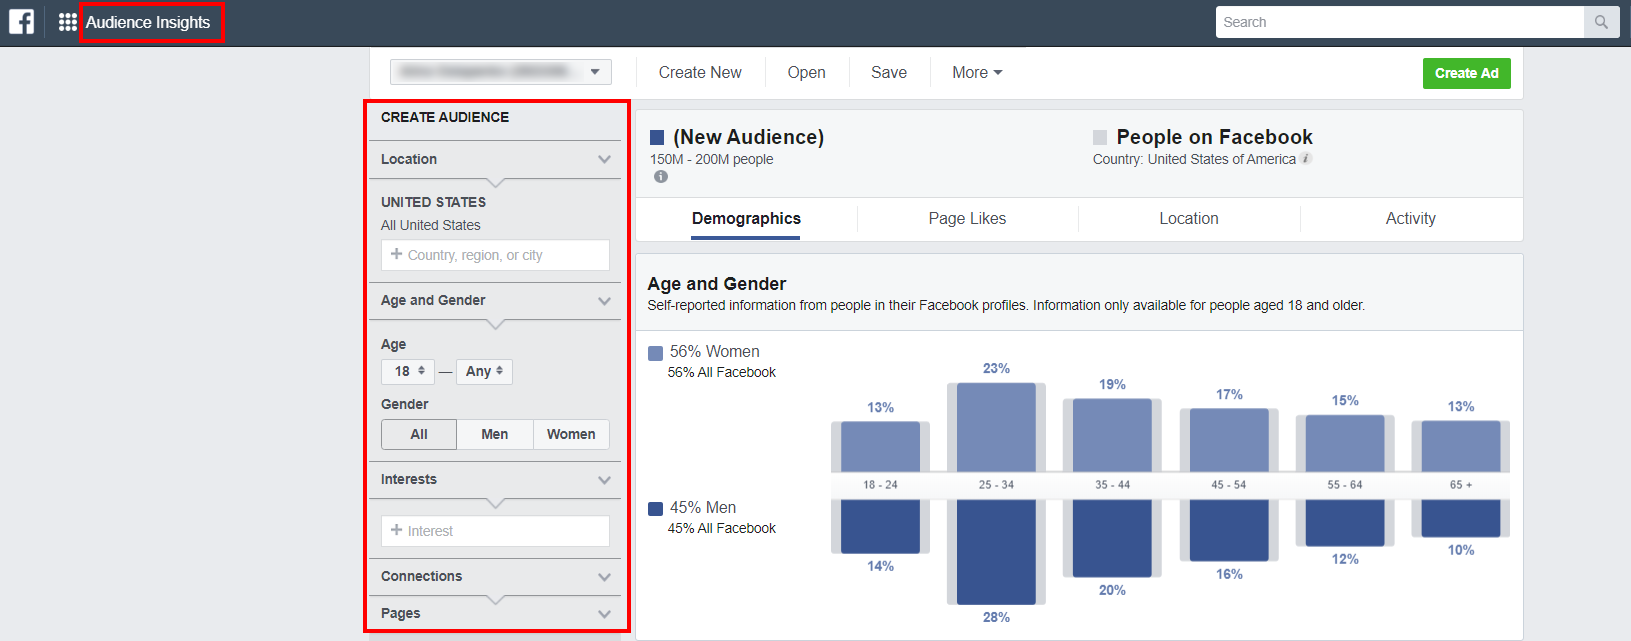 Audience Insights section with metrics